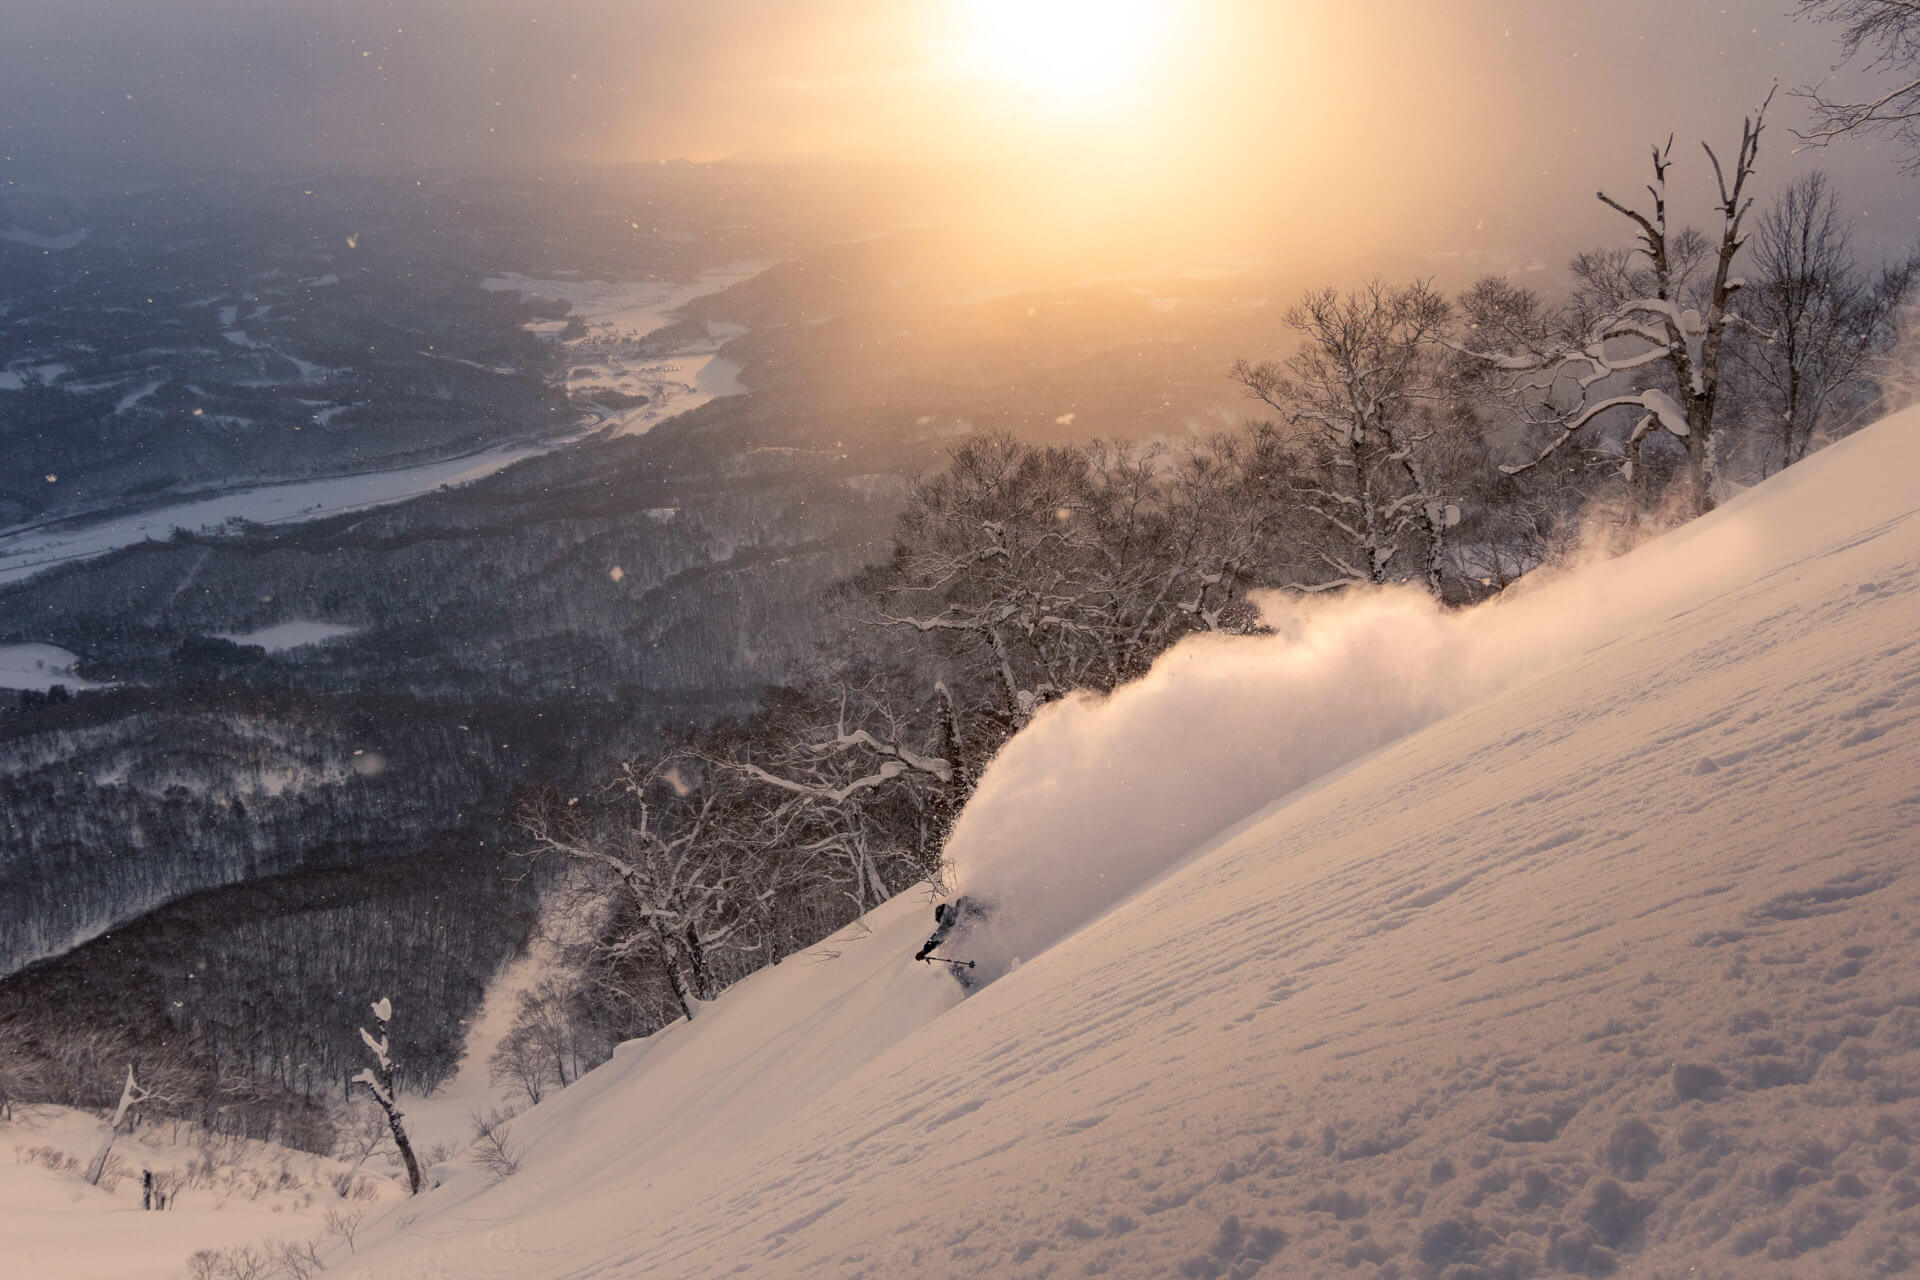 Joshua Sellens x Niseko Zen - Mountain Sports and Lifestyle. 2020